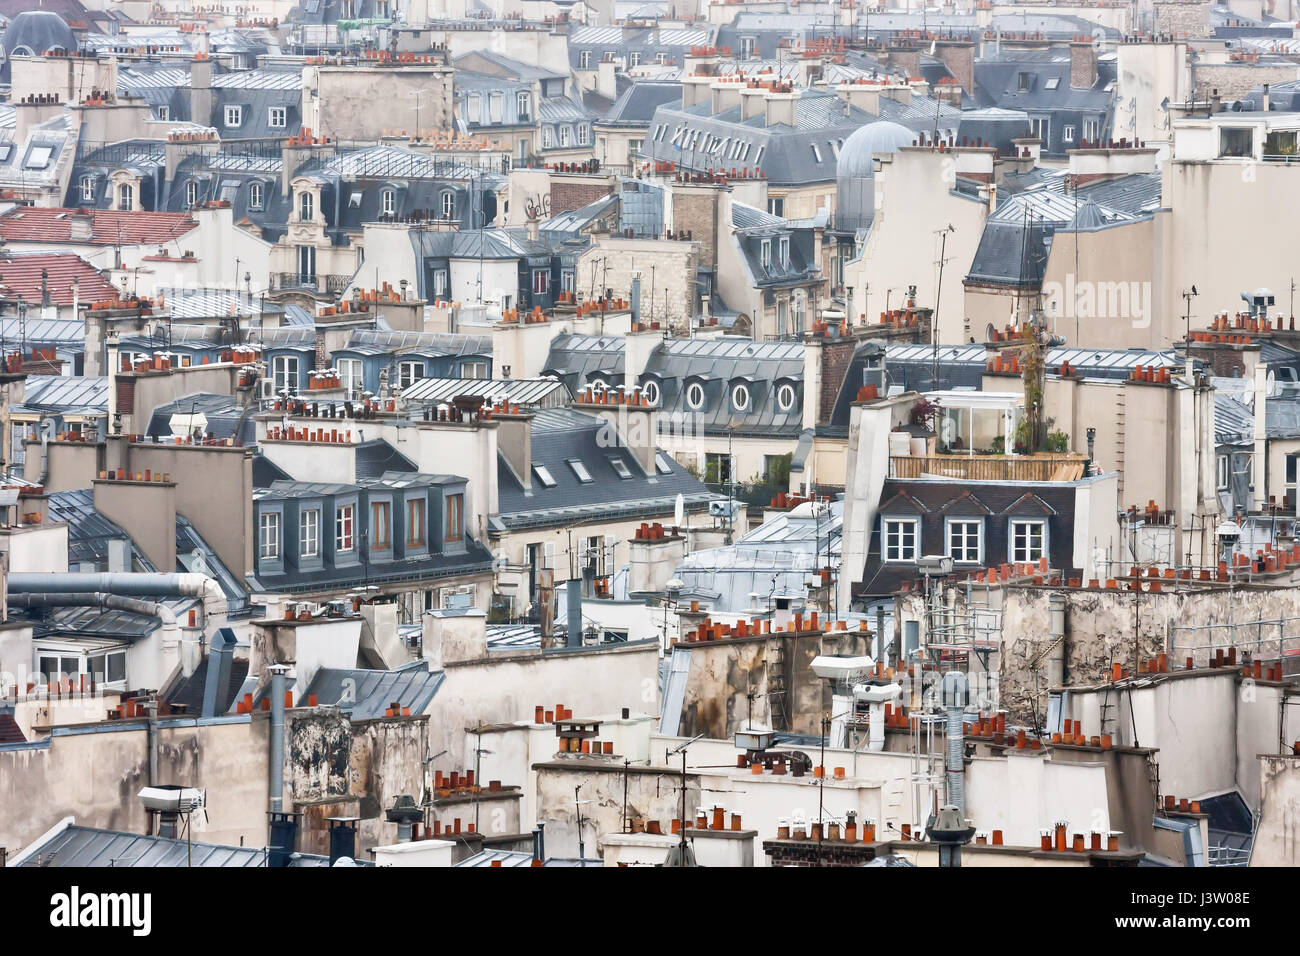 View to Paris roofs from Cathedrale Notre-Dame de Paris. France. - Stock Image